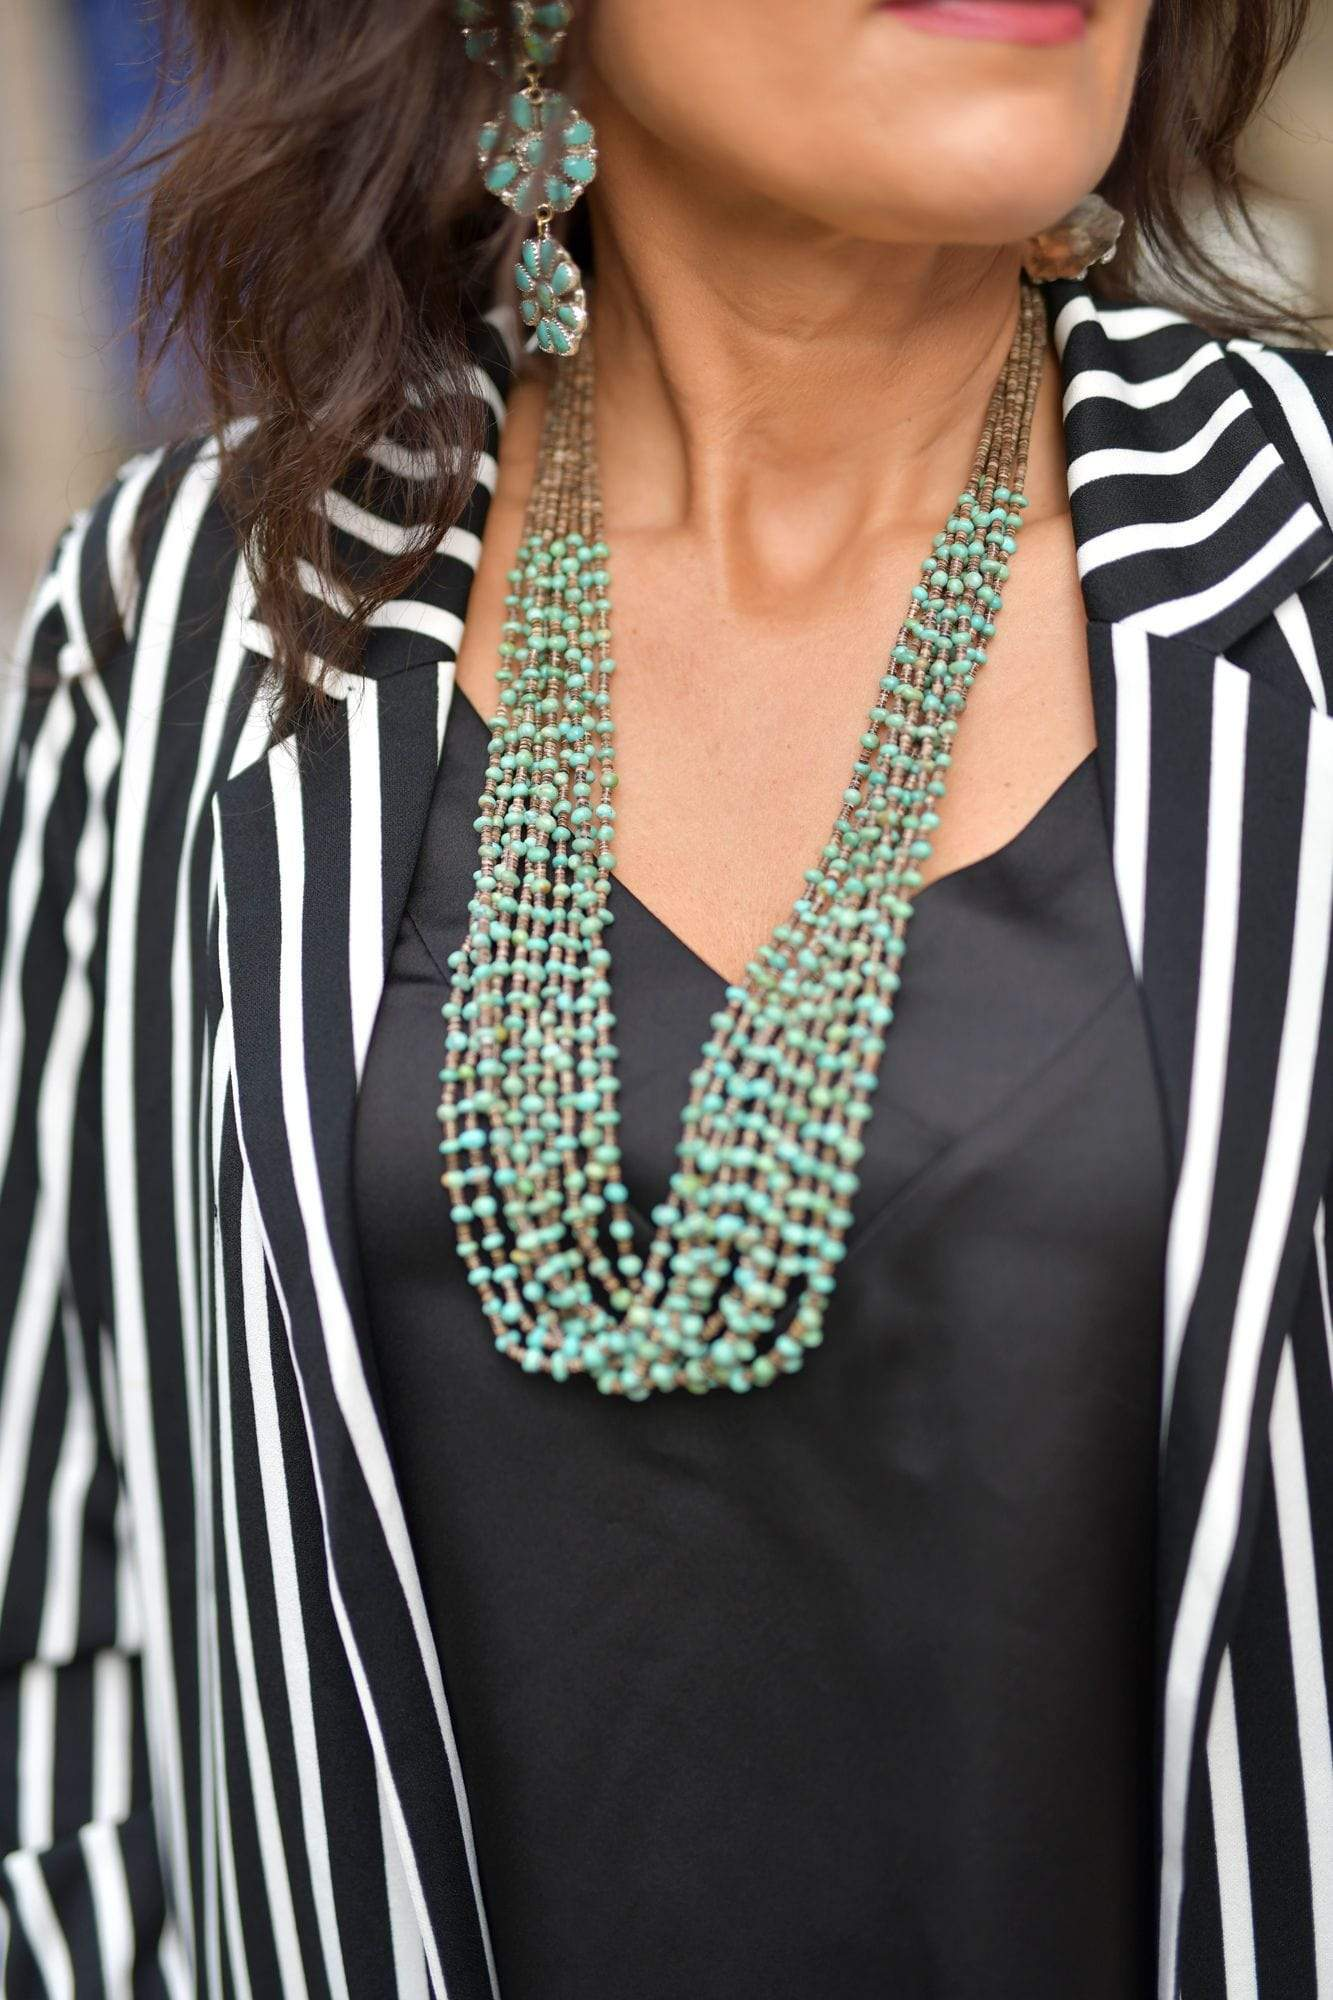 Accessorize In Style Sterling Necklaces Caesar Diez Turquoise Necklace